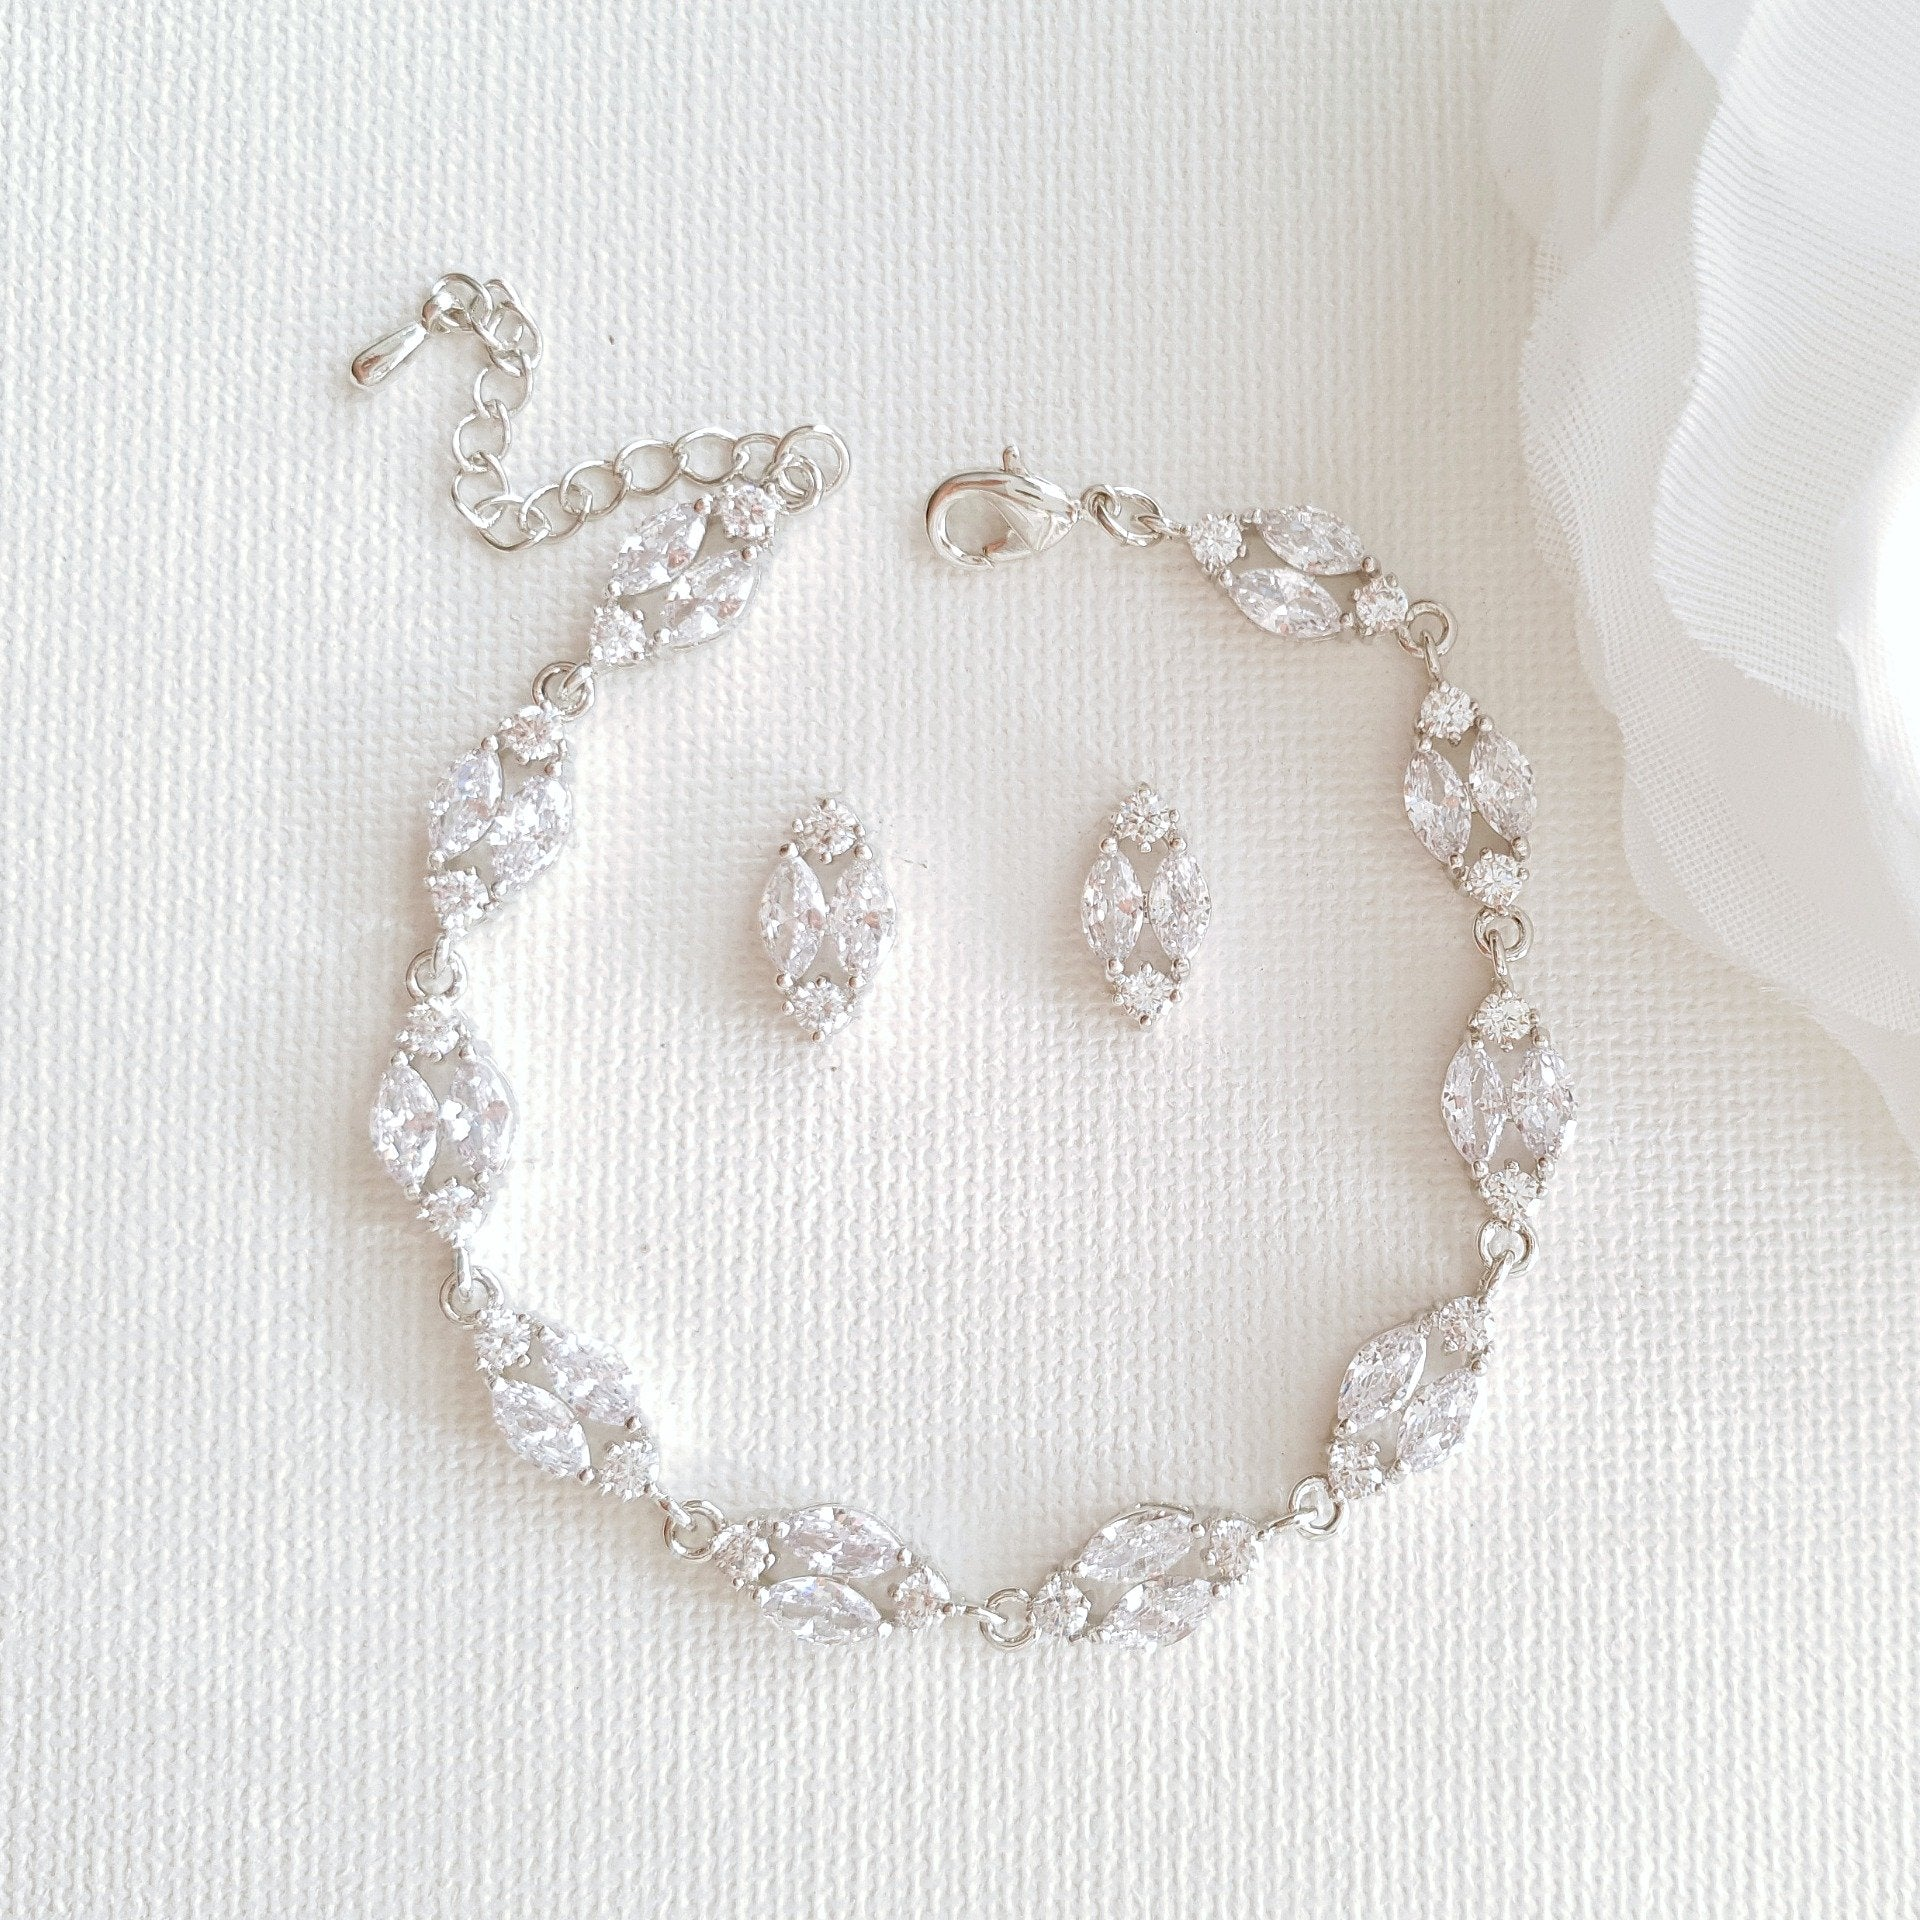 Small Stud Earrings Bracelet Set- Hayley